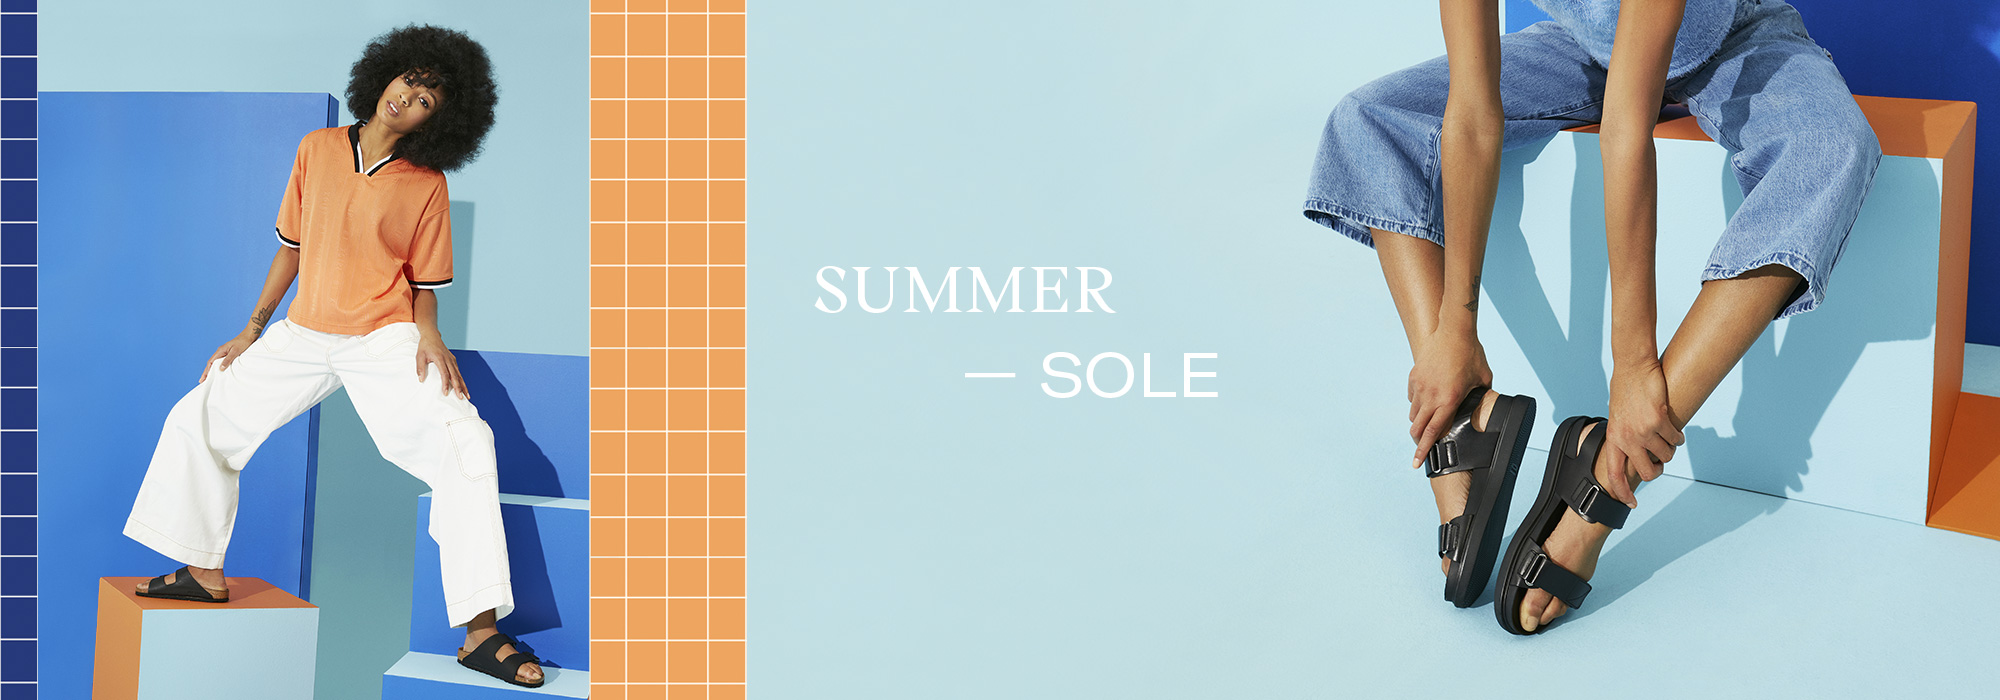 HP - W19 - SUMMER SOLE